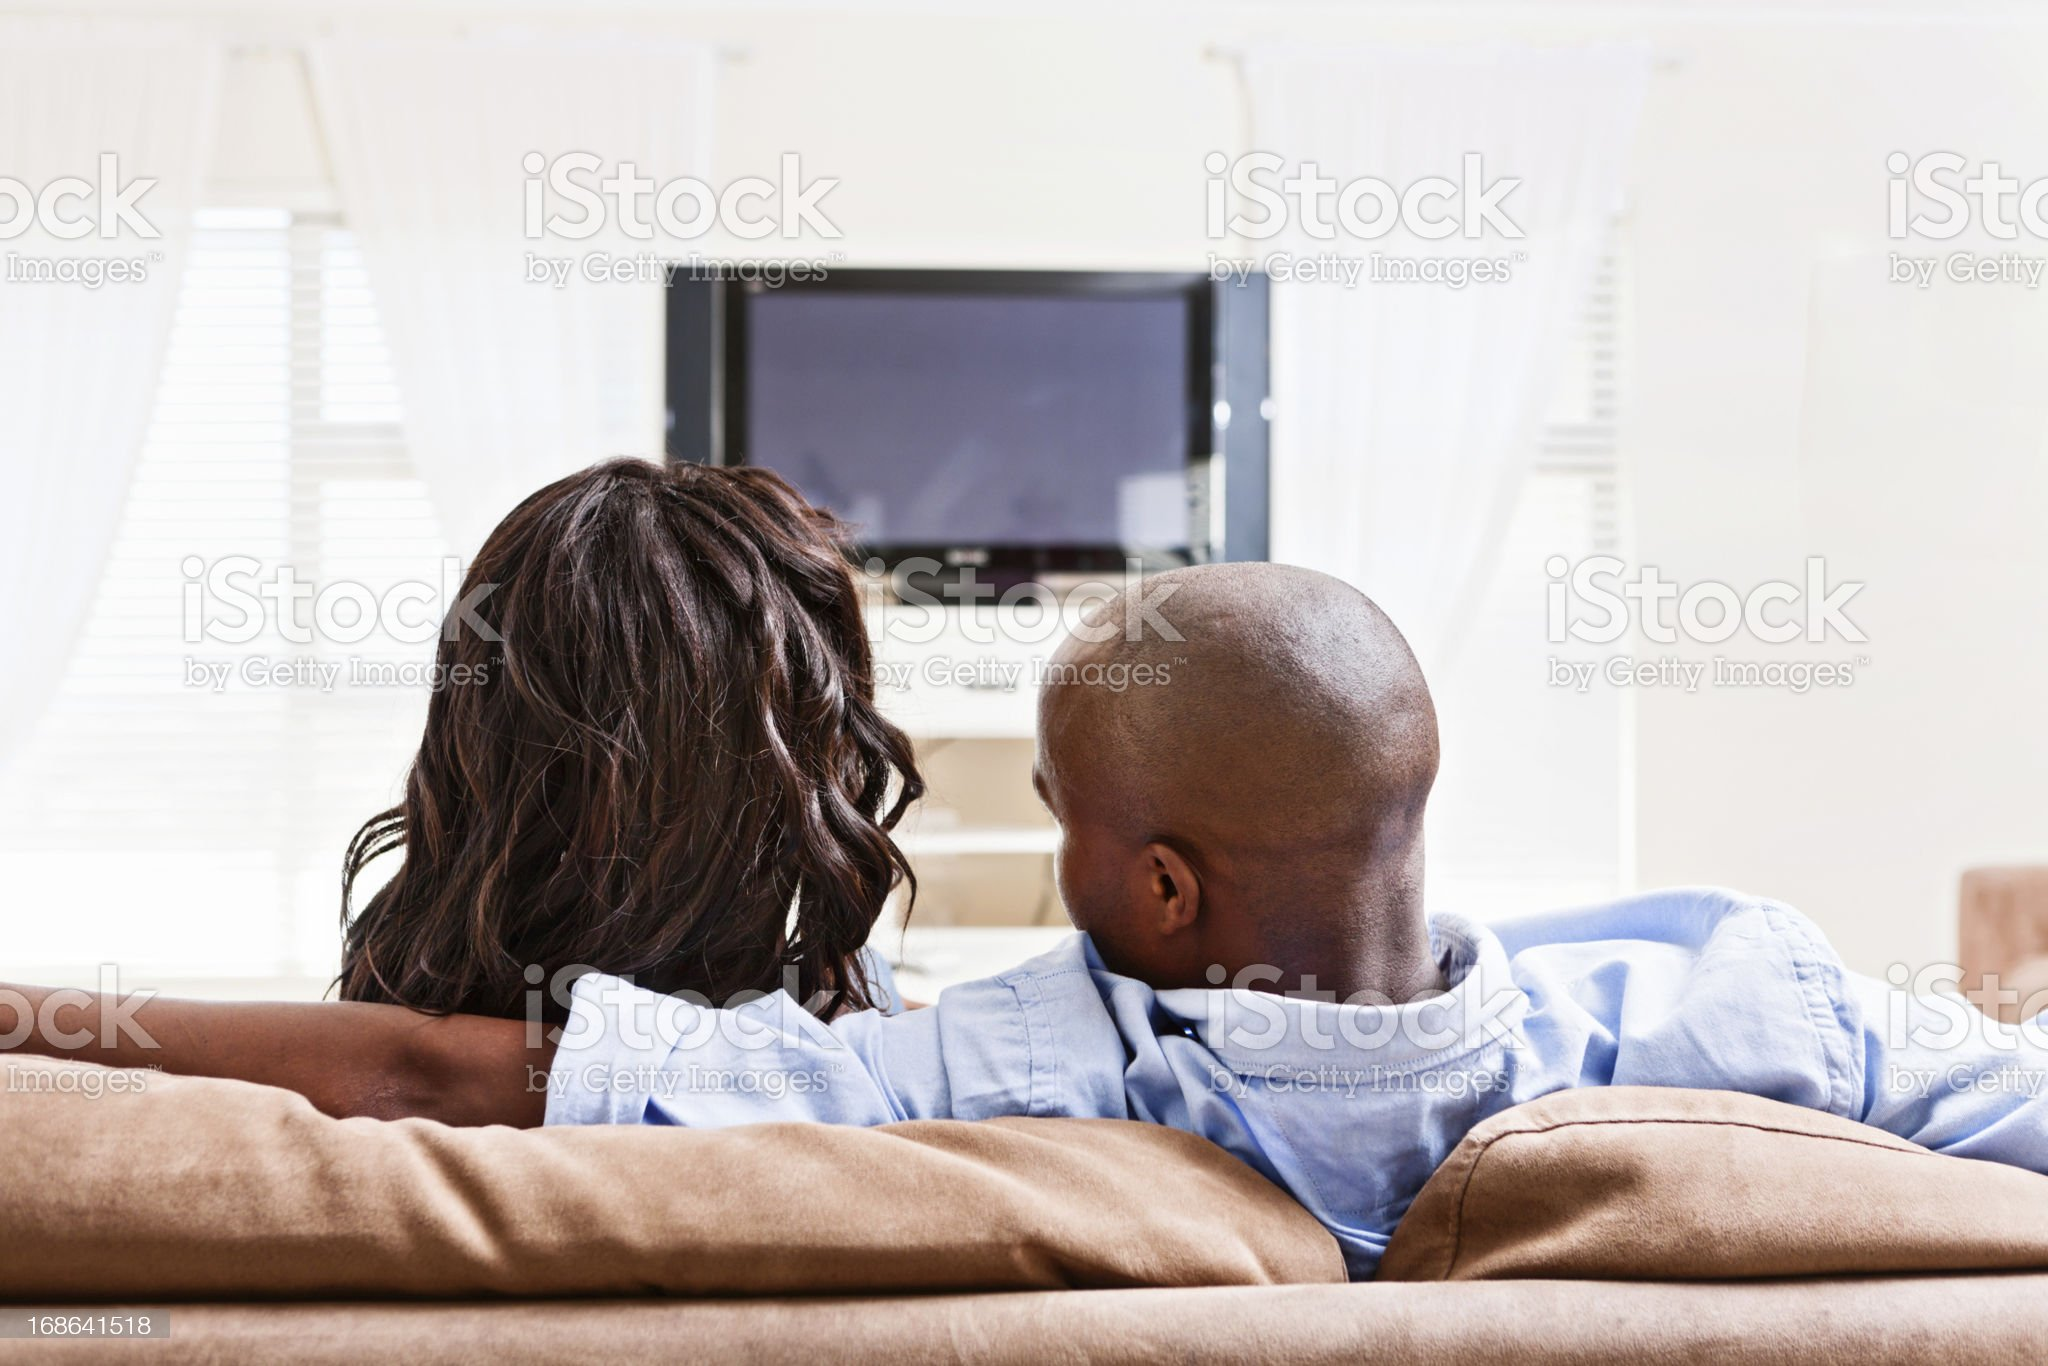 Backview of couple watching TV: he sneaks a hug royalty-free stock photo